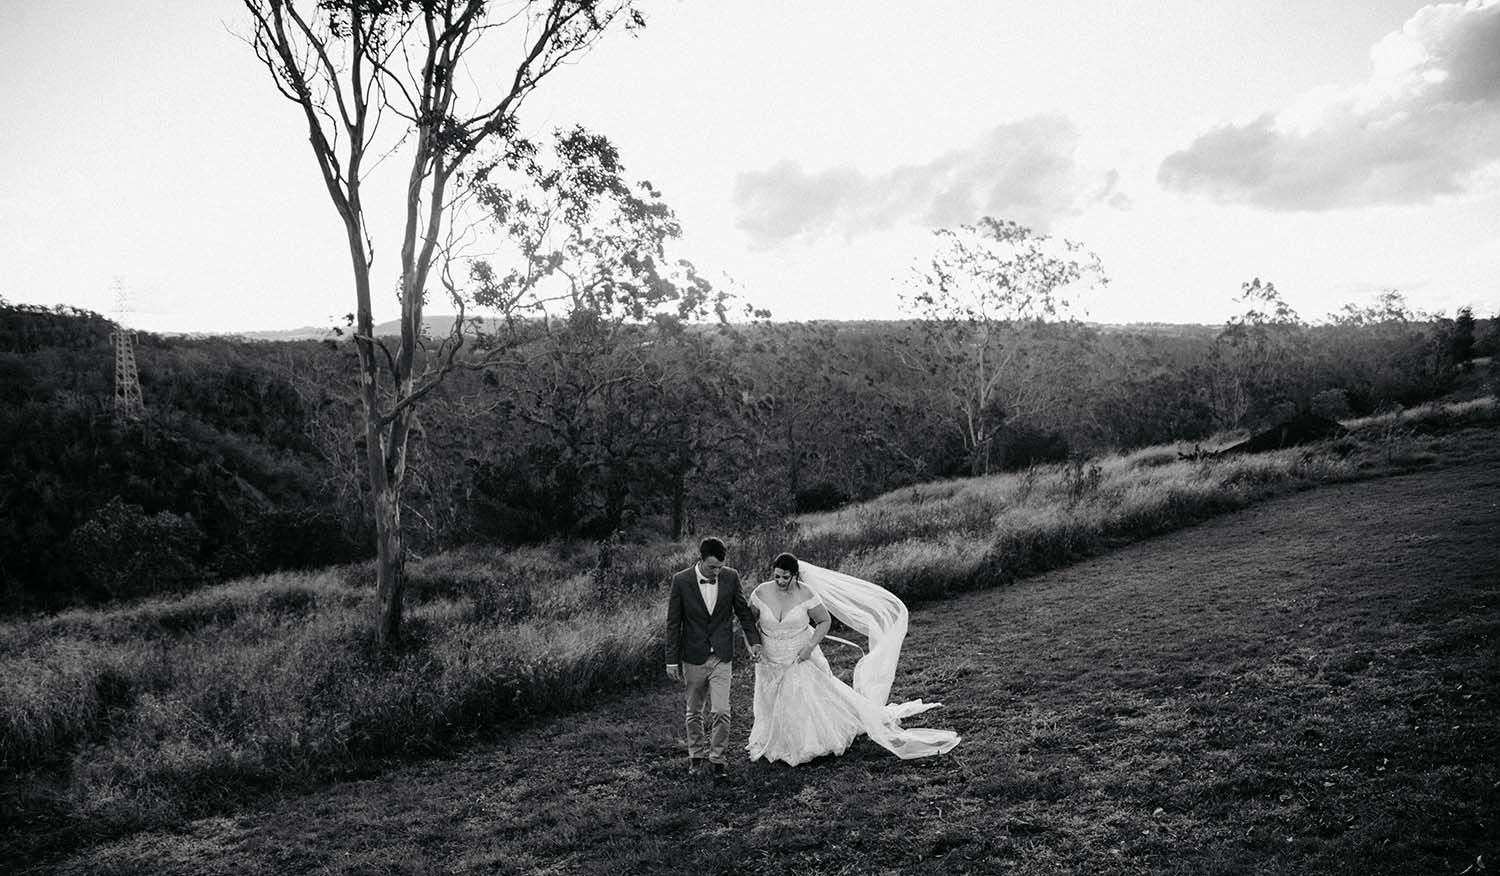 Wedding Photography - Black and white in field